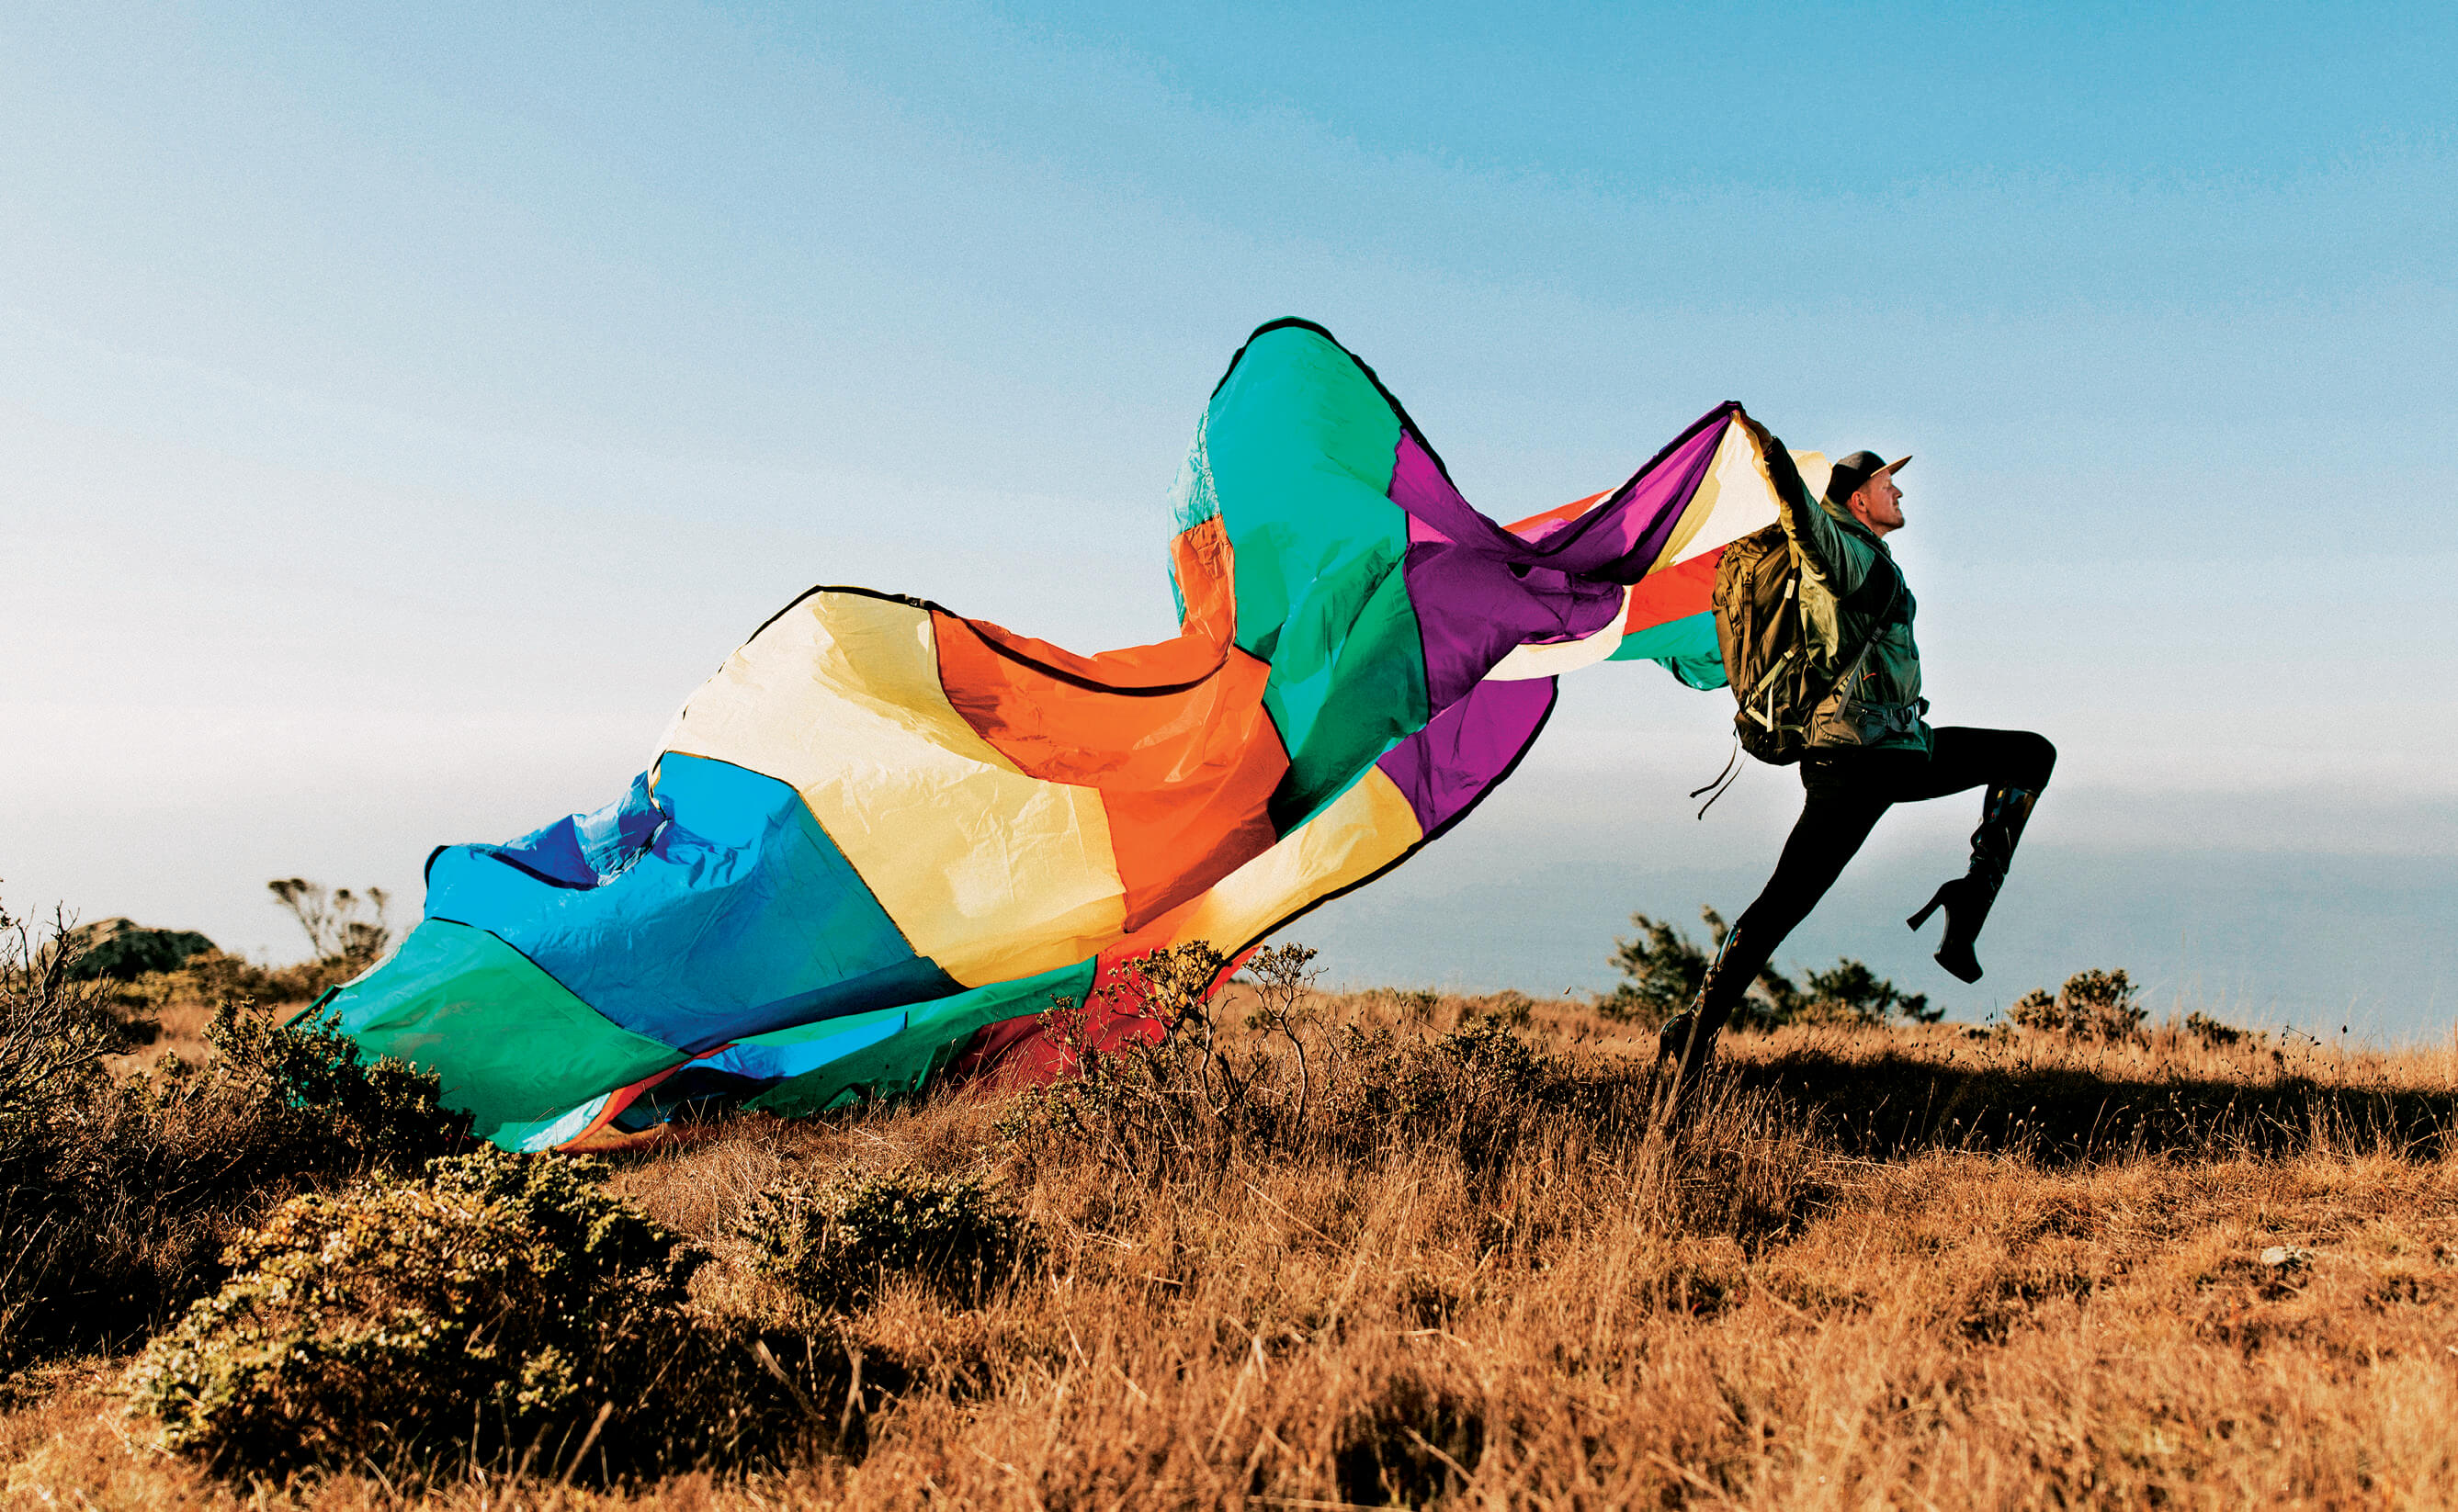 Hiker with rainbow parachute